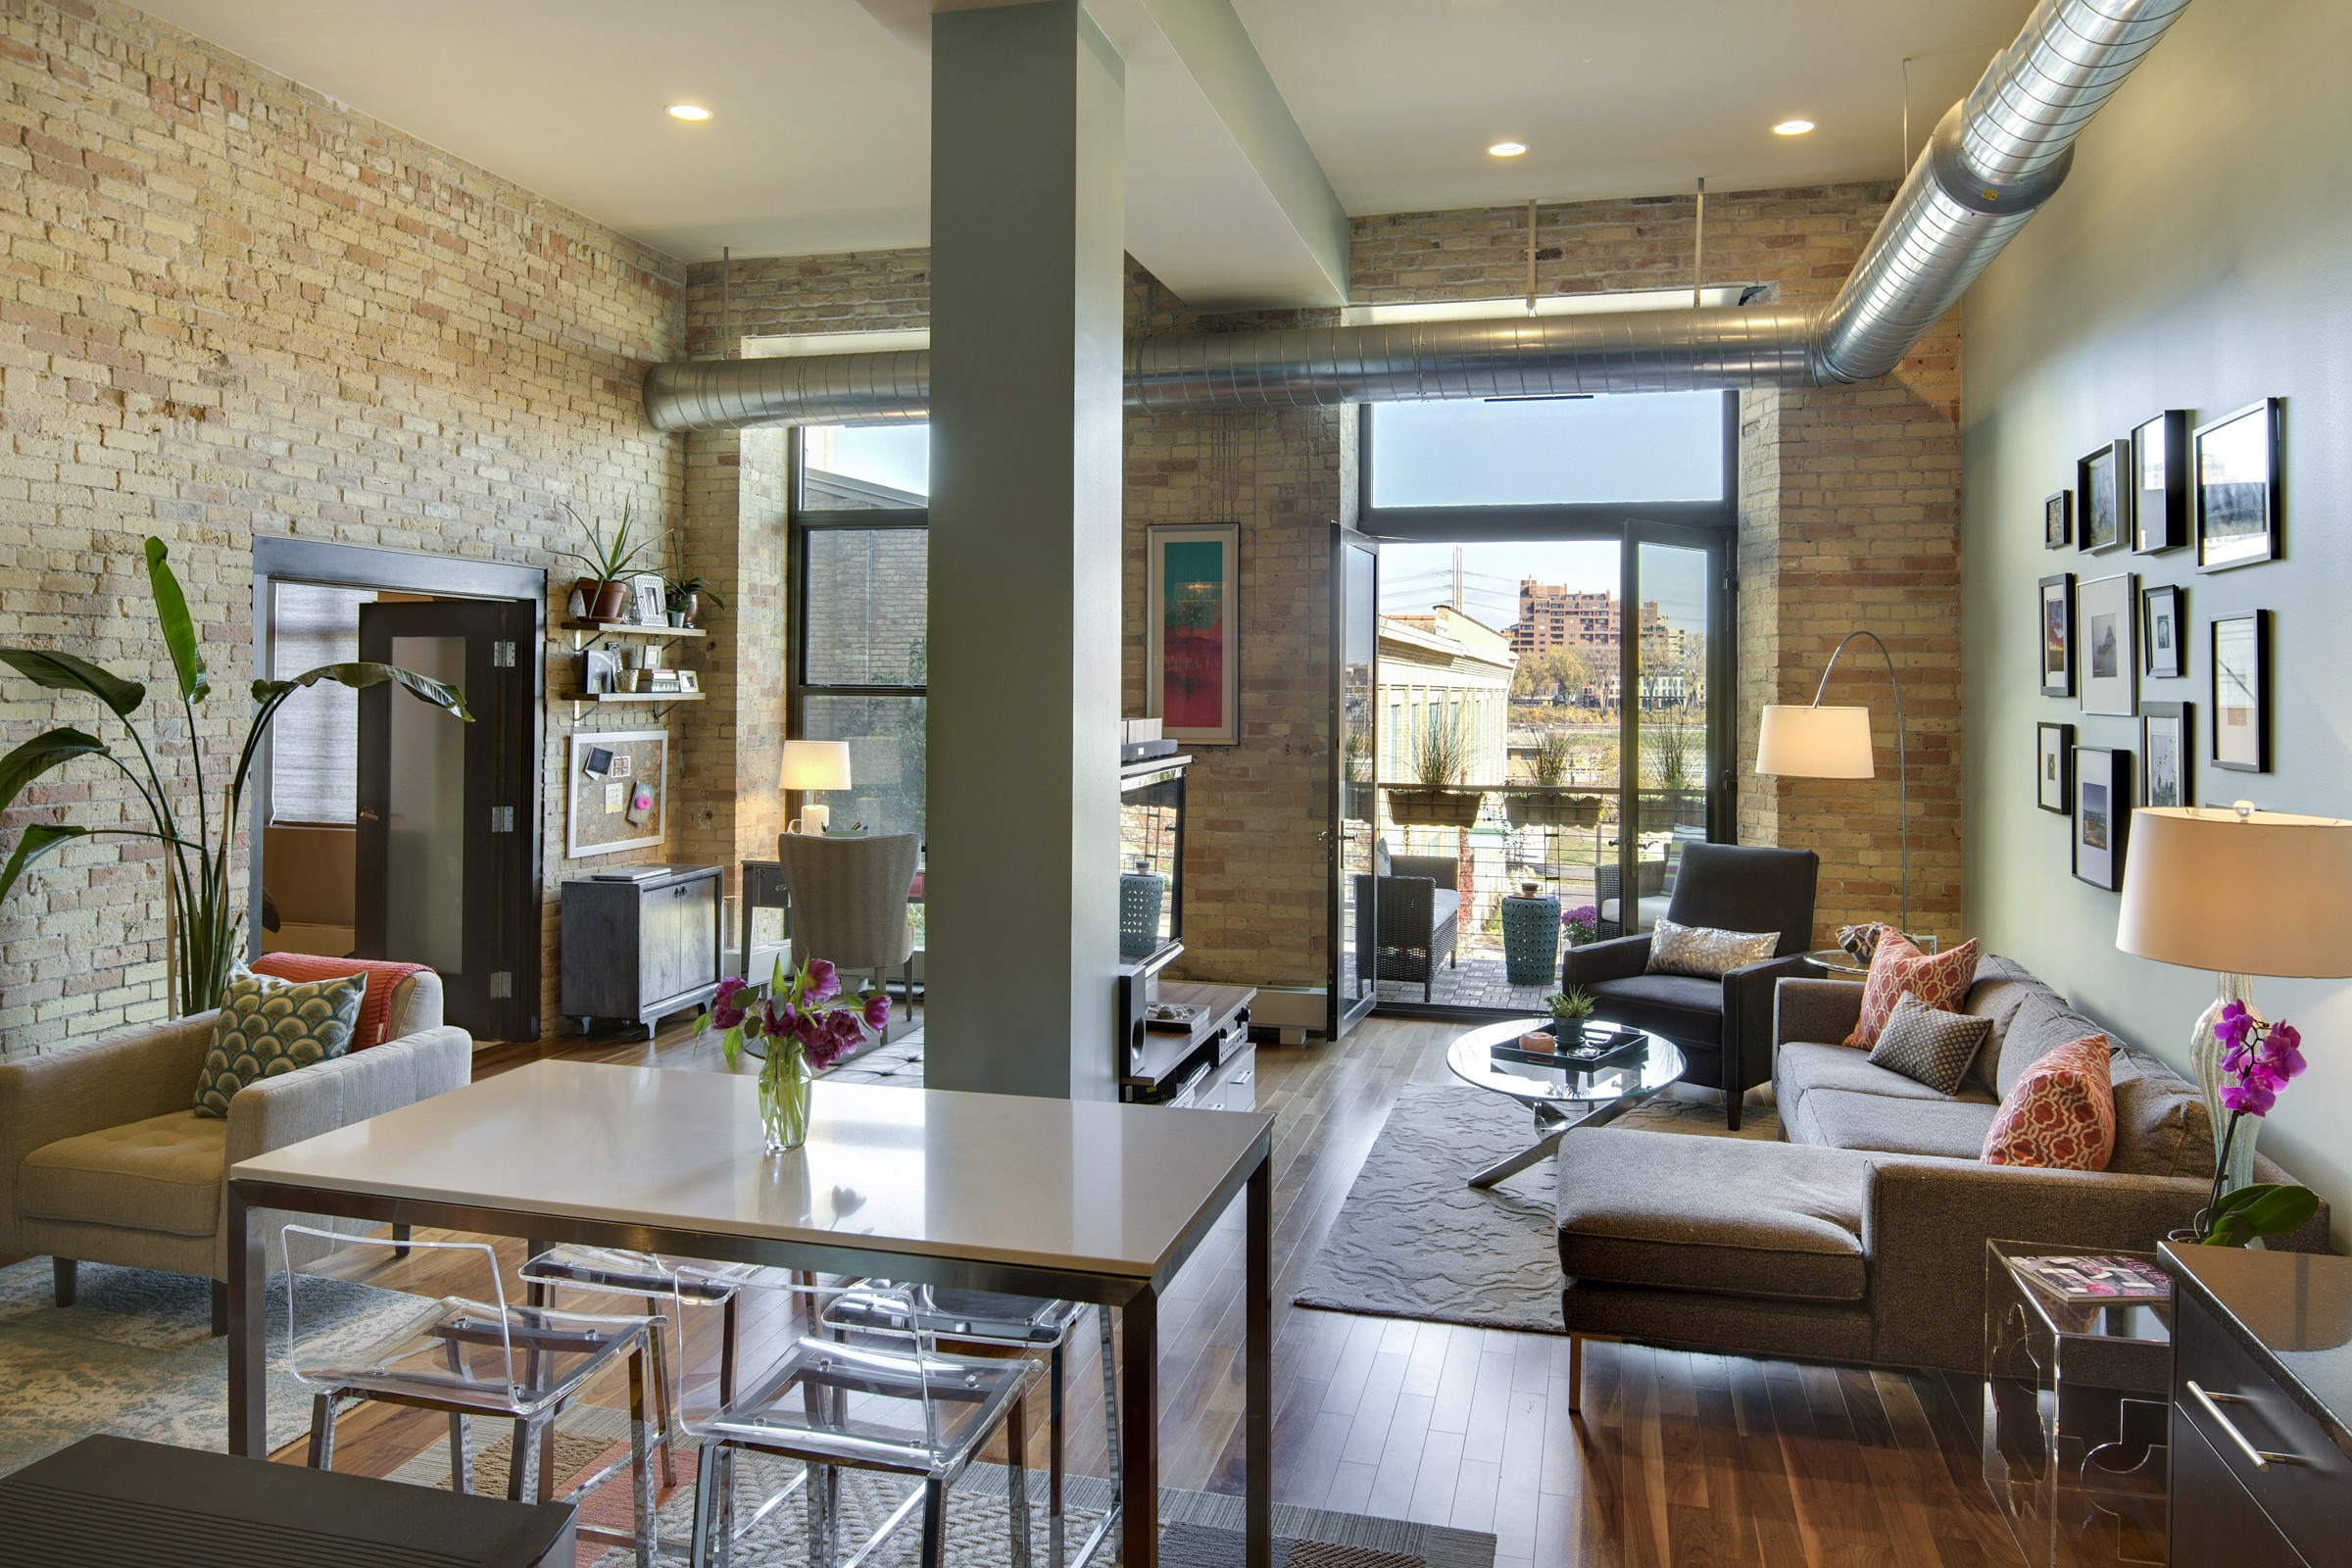 Houzz Tour. Minneapolis Interior Designer.